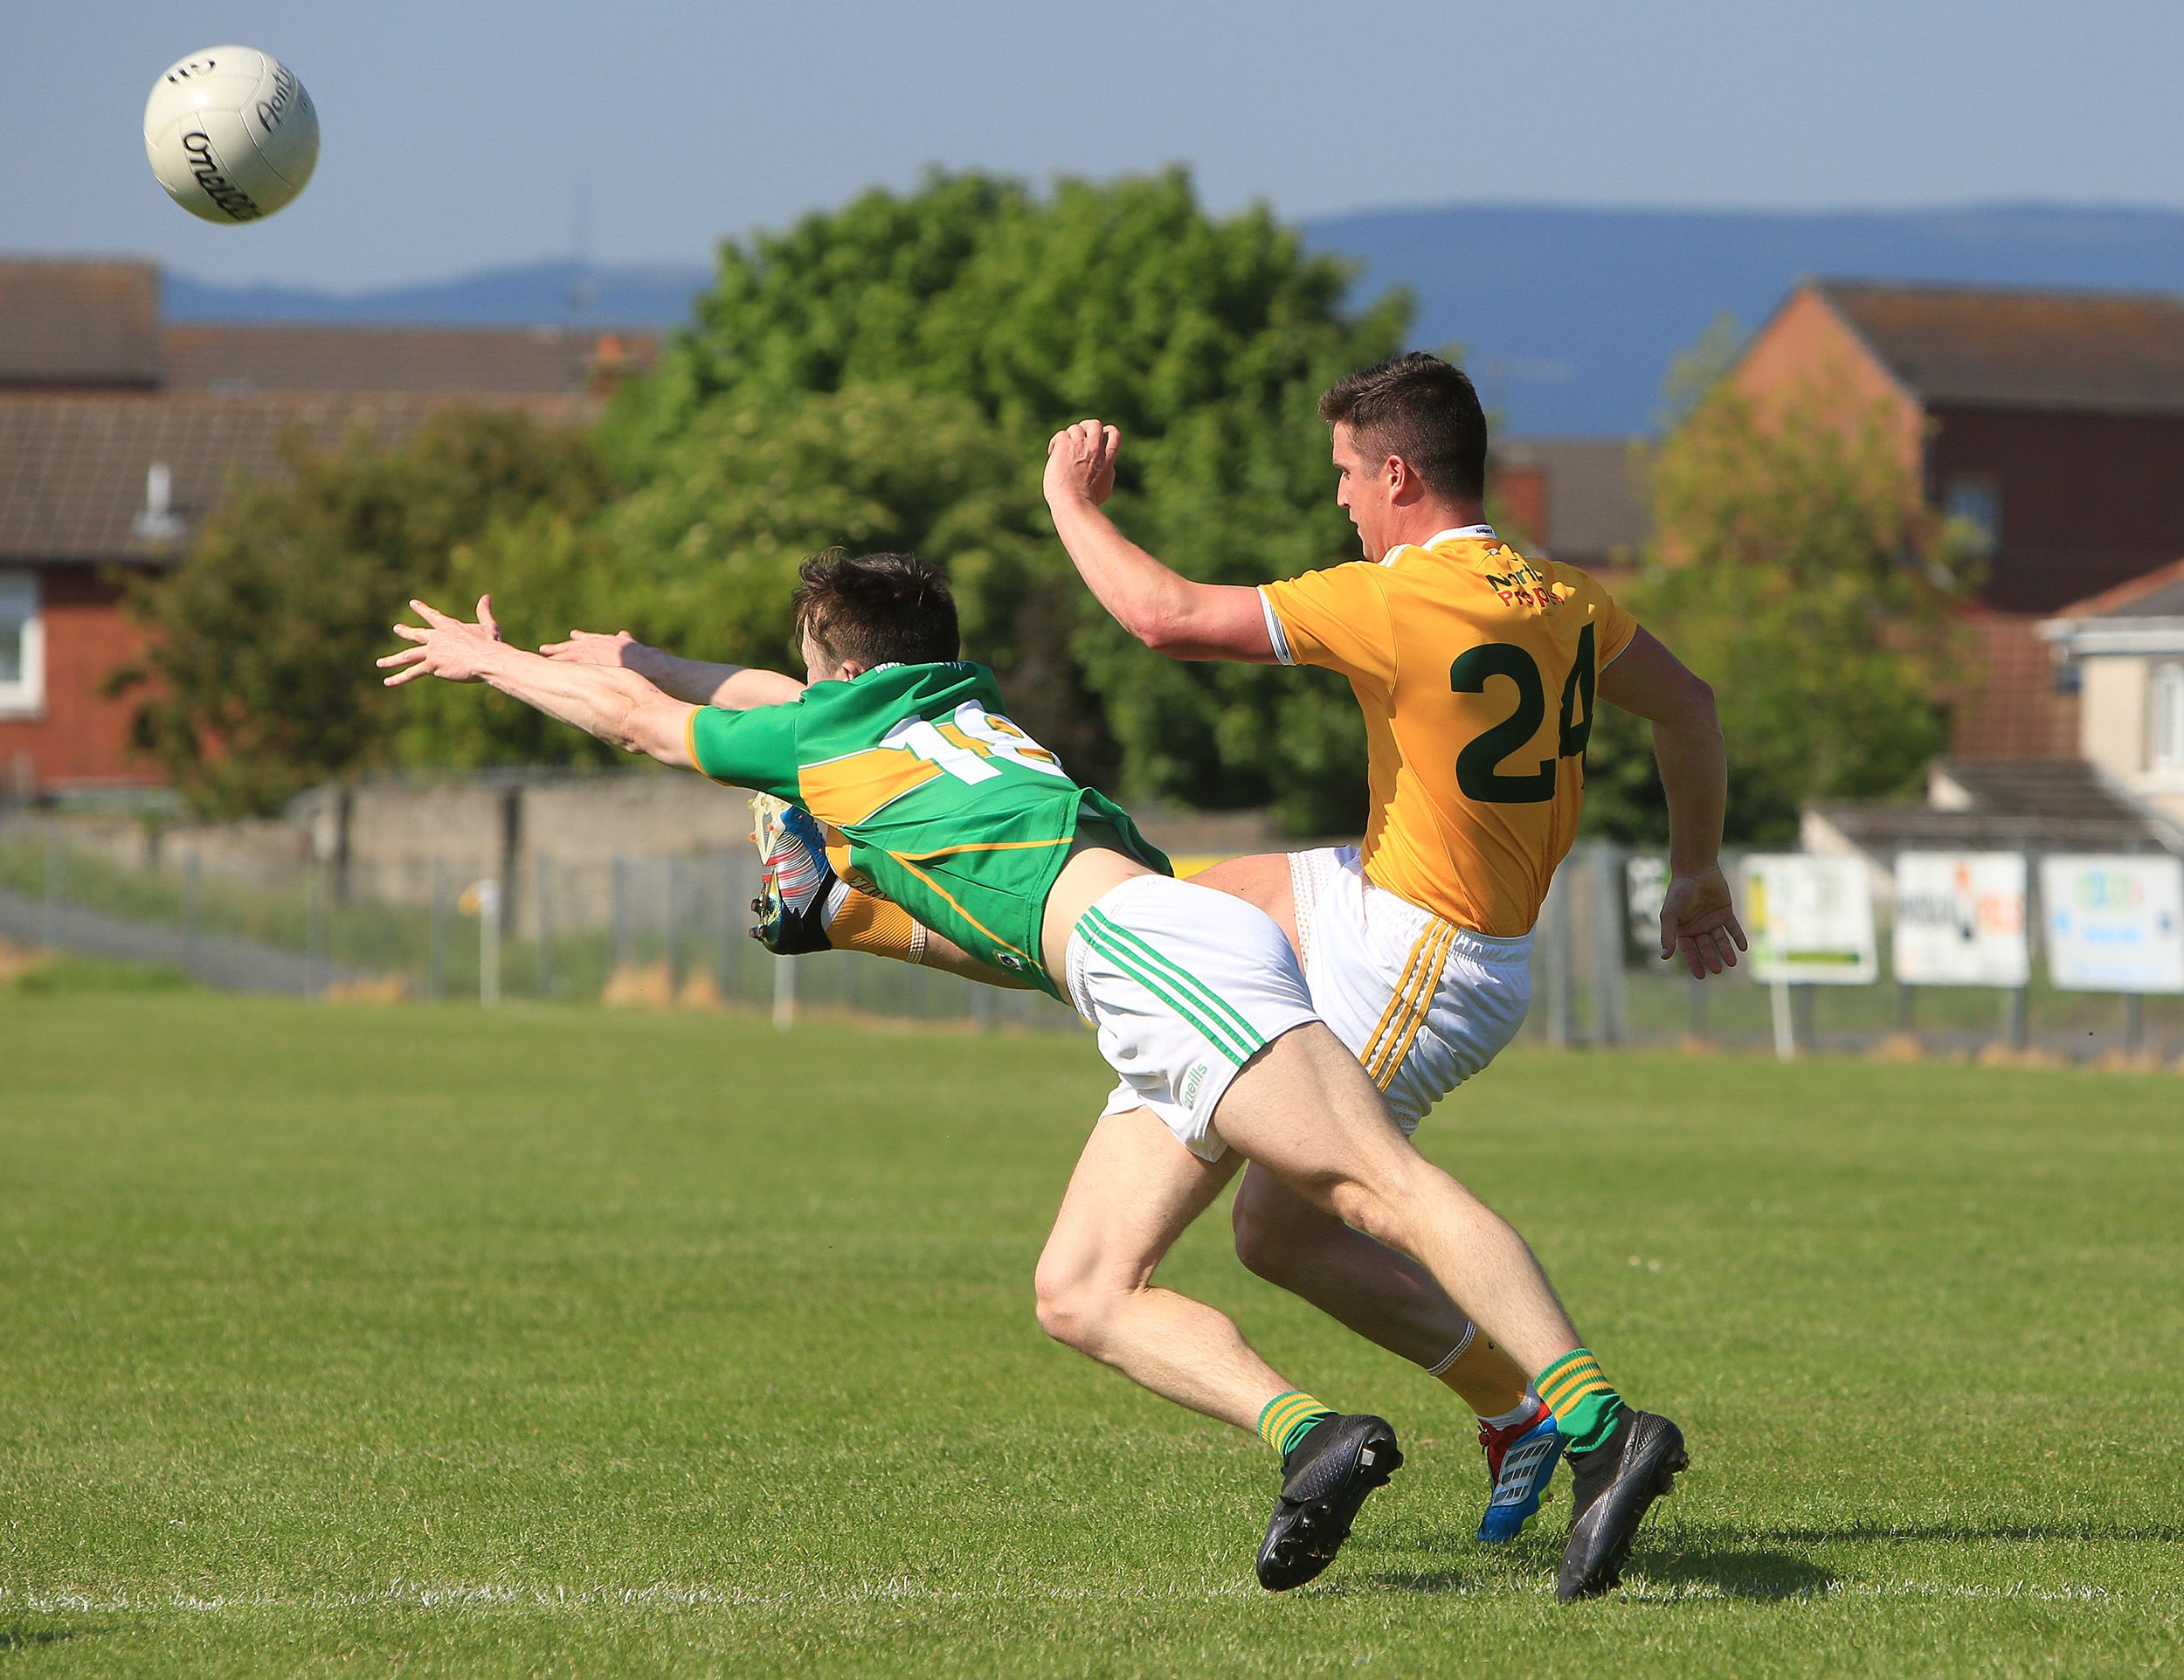 Antrim attacker Tomás McCann fires over the injury-time winner as the Saffrons recorded another dramatic win at Corrigan Park on Sunday